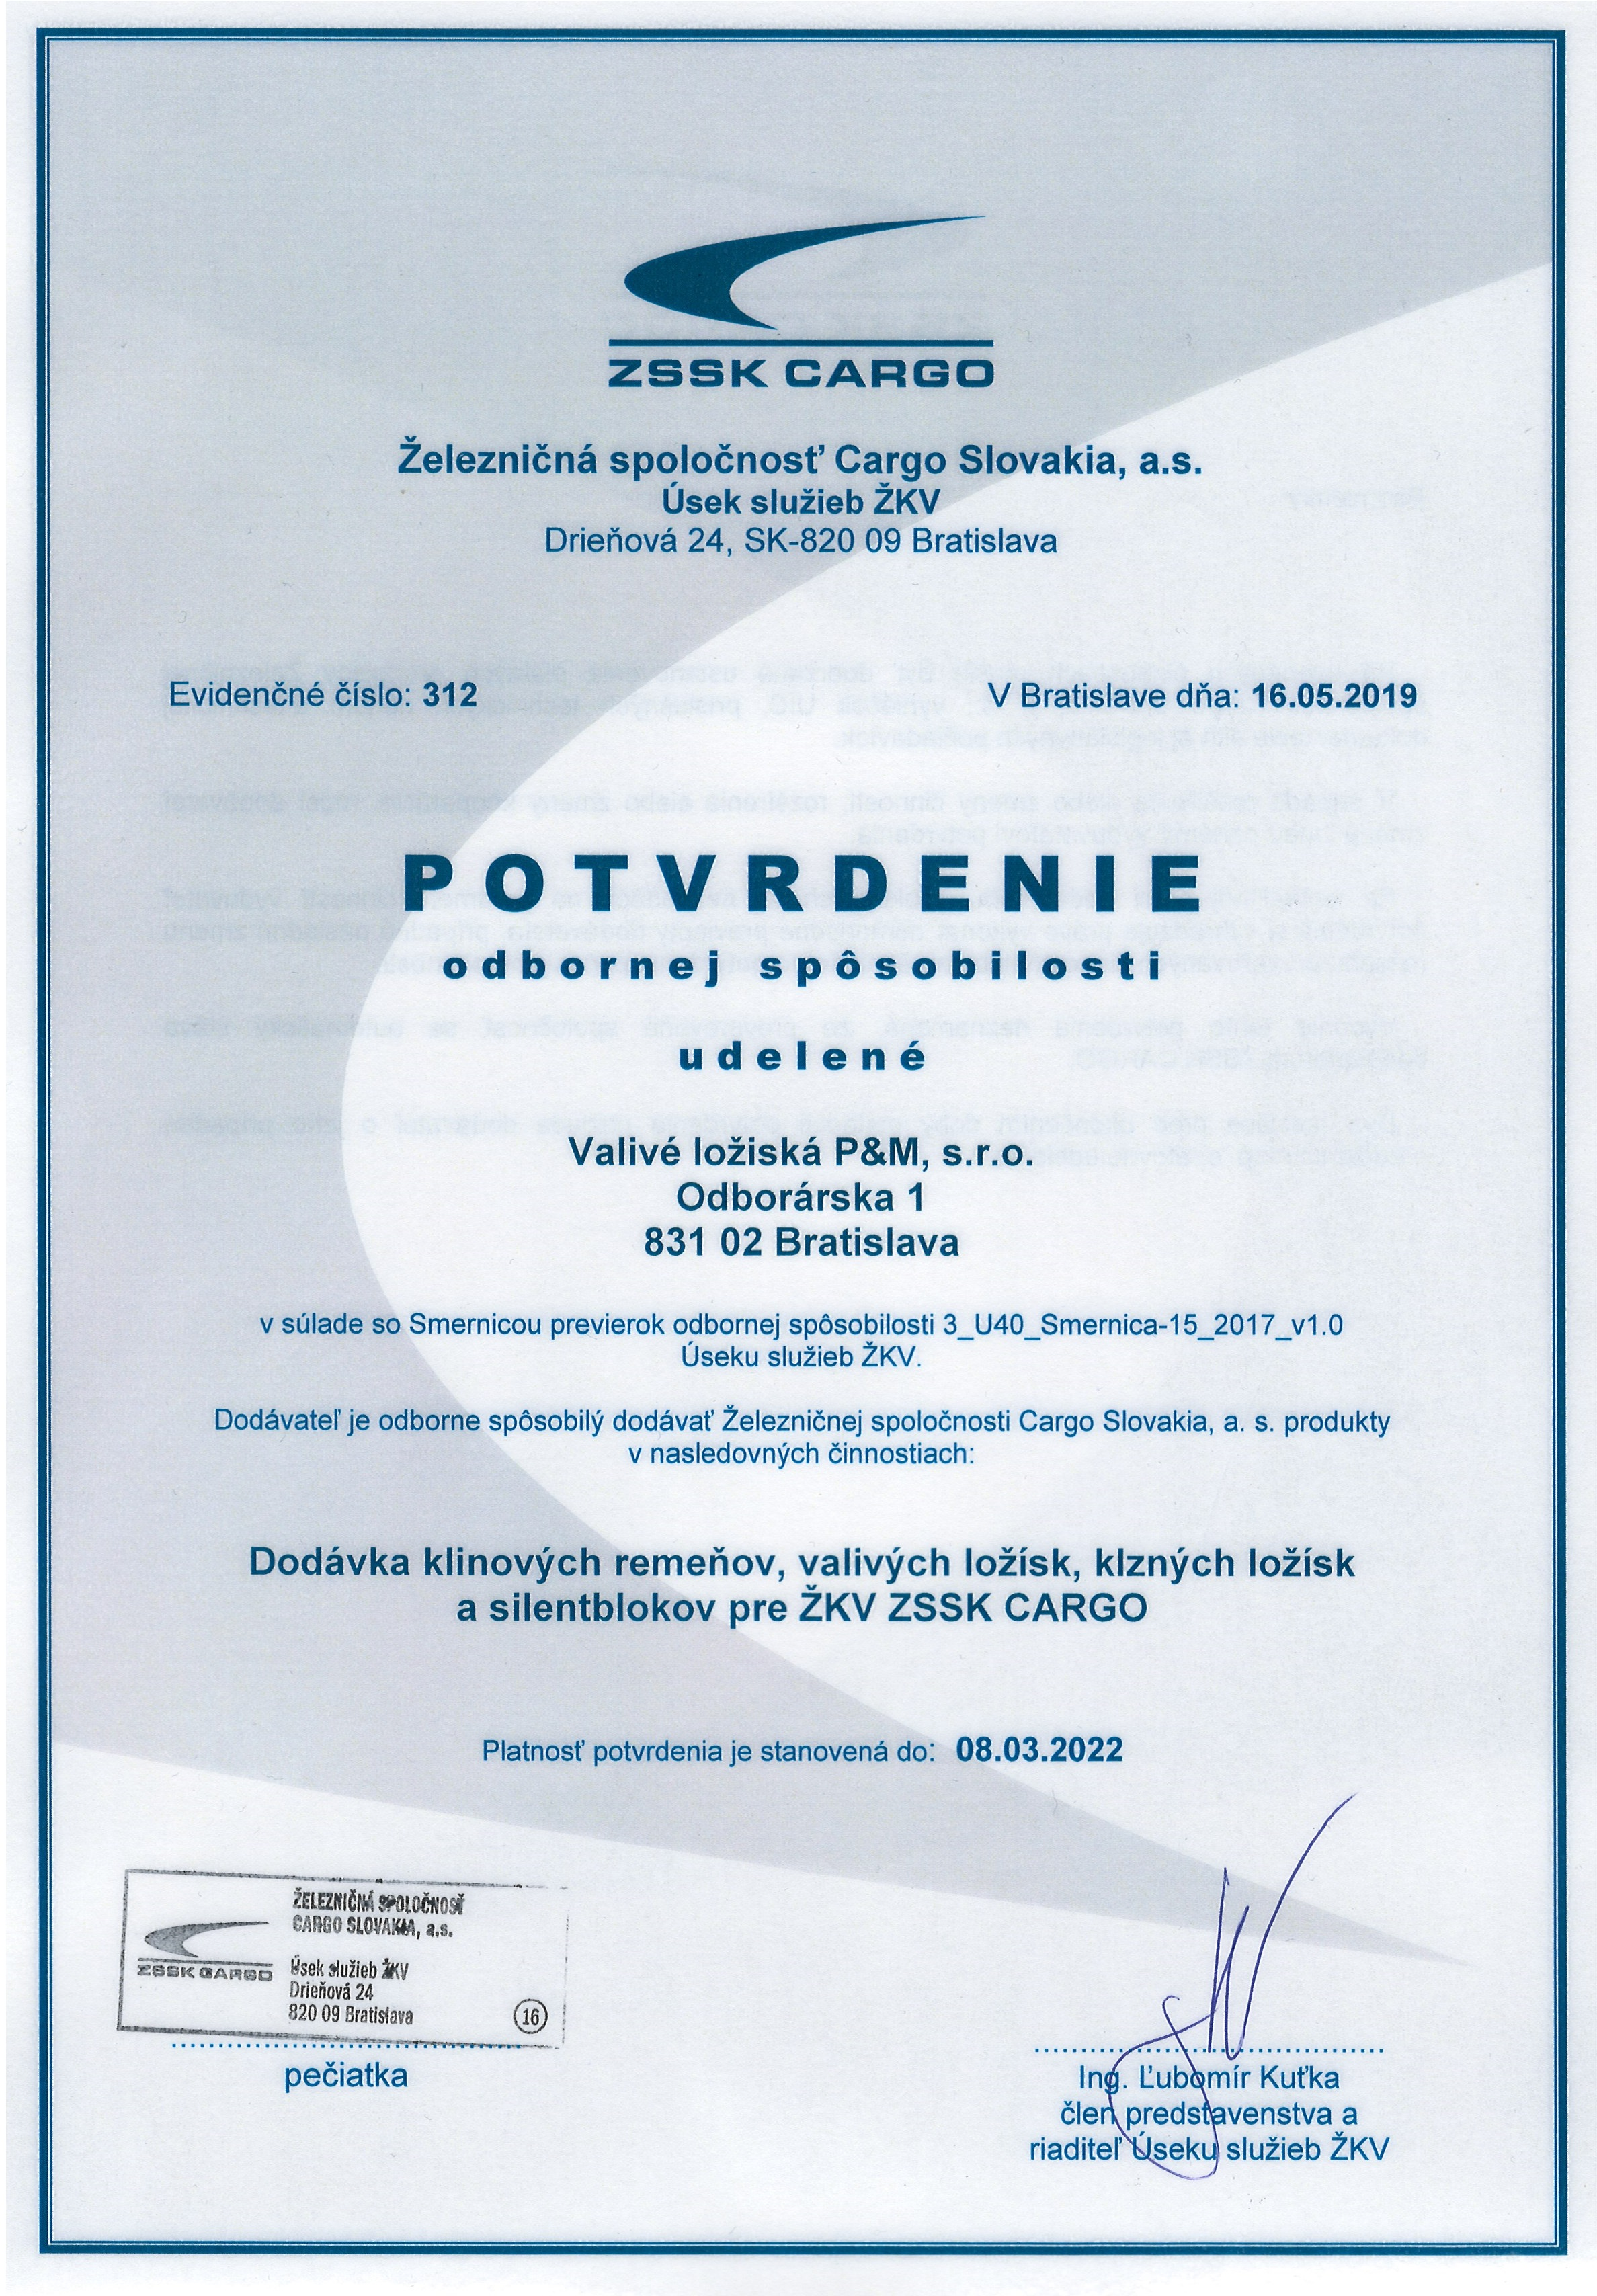 Certificate Cargo, Professional Competence